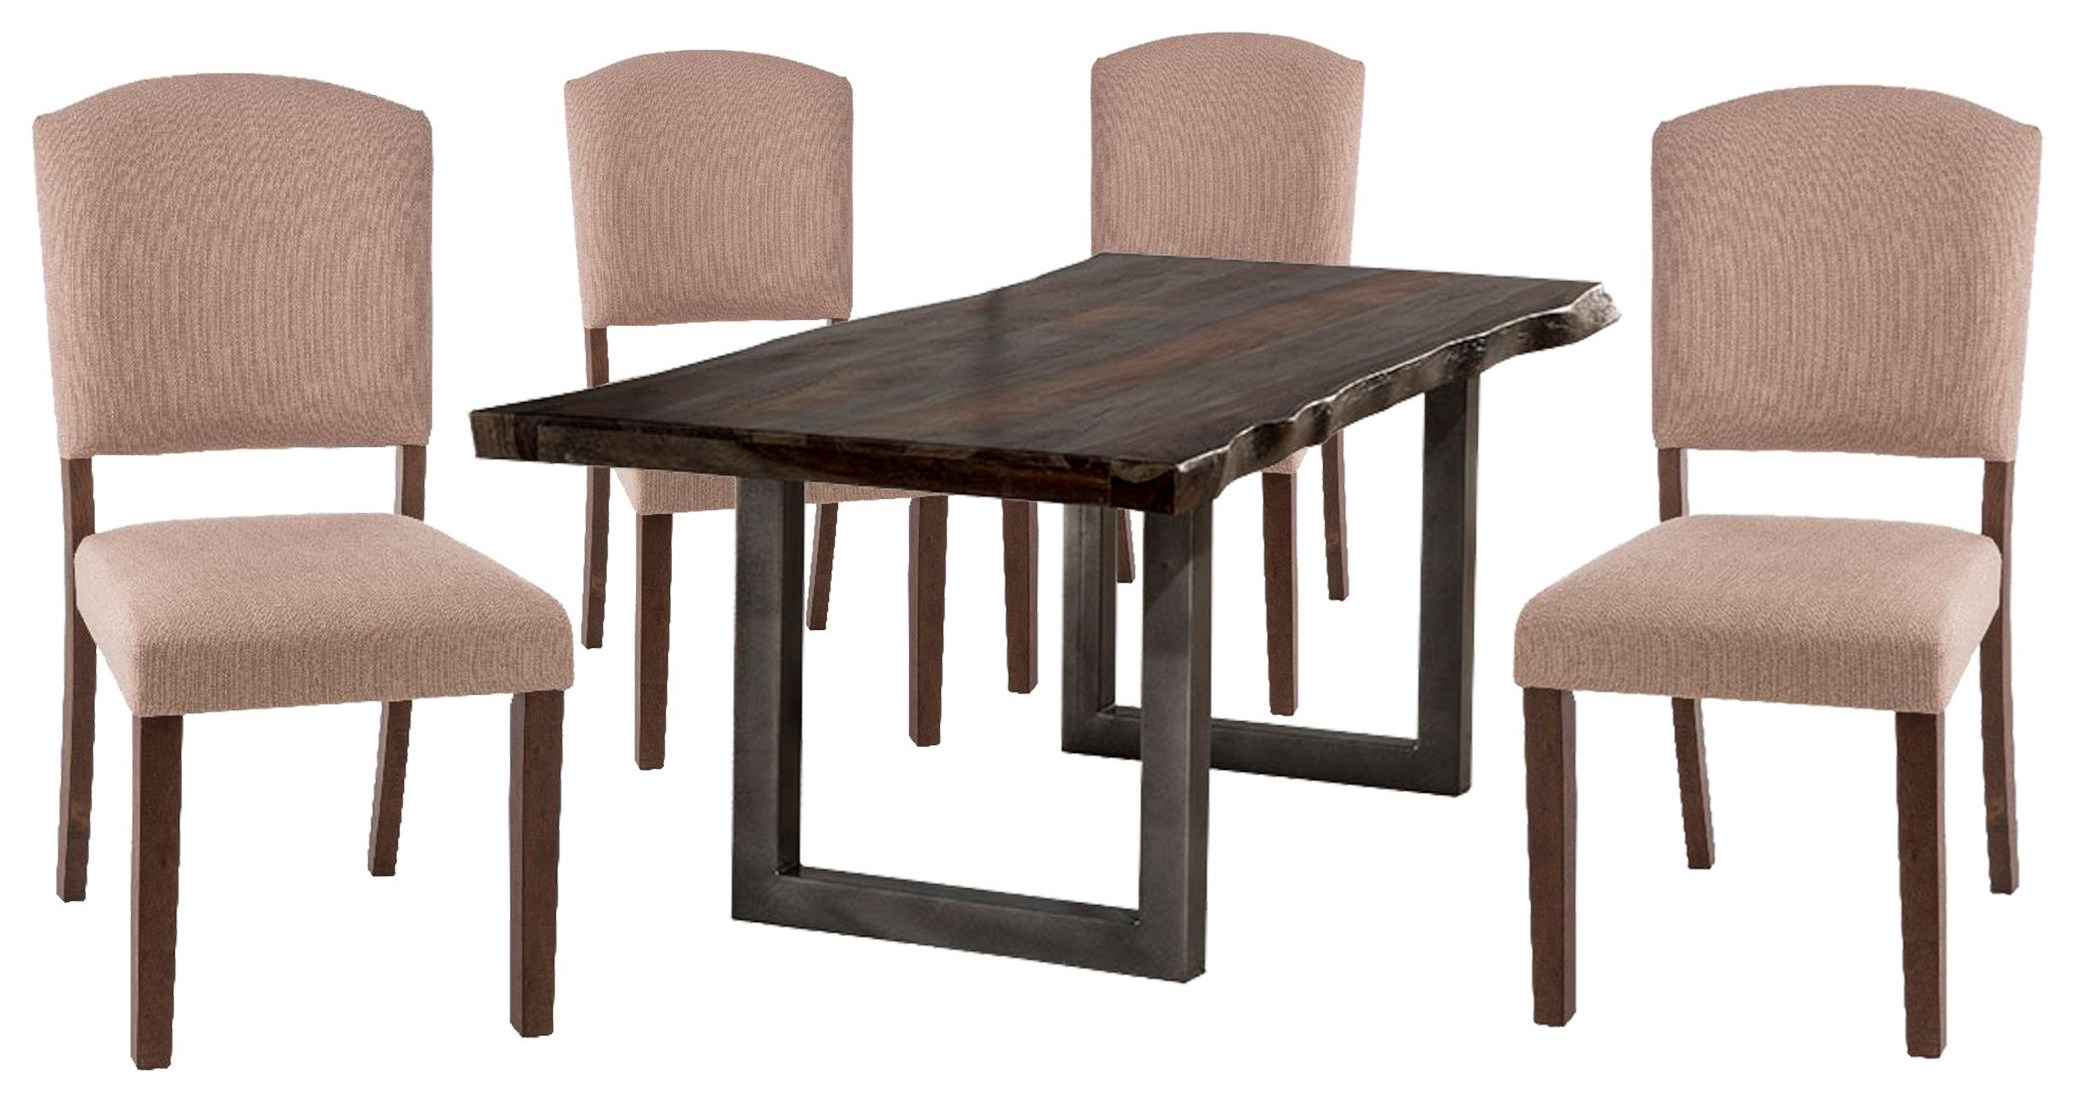 Emerson Table and 4 Chairs by Hillsdale at Johnny Janosik